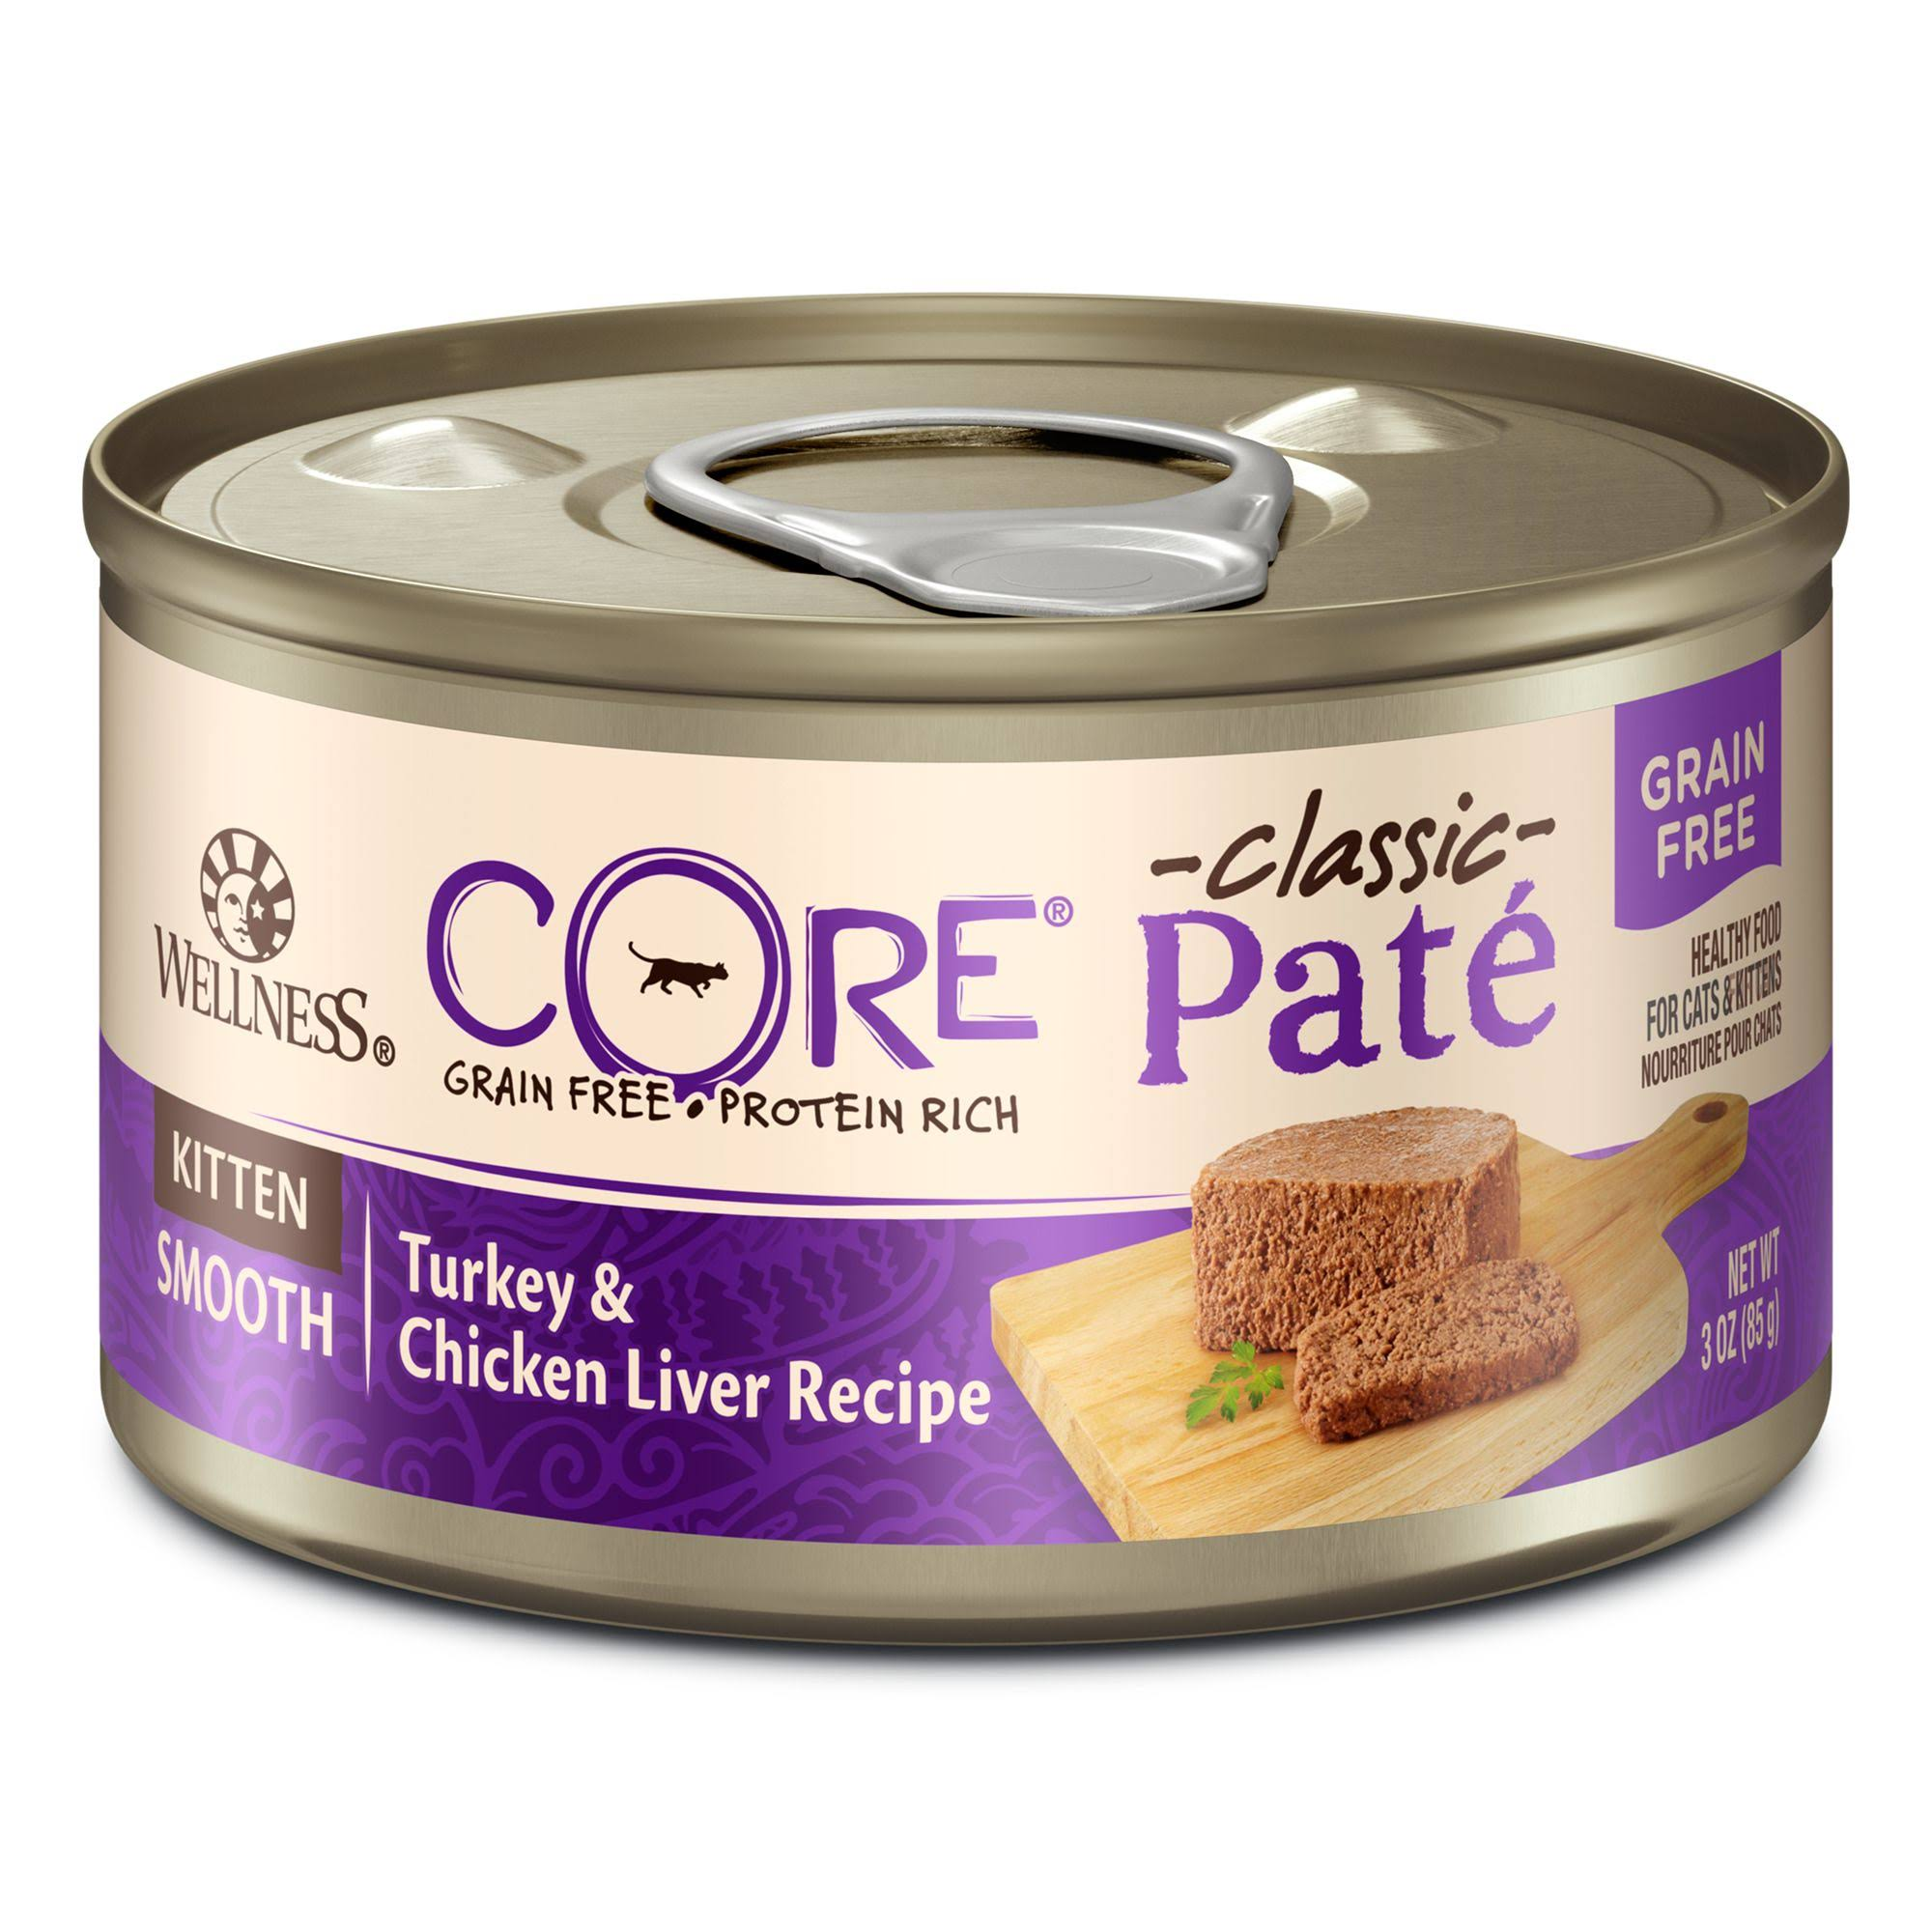 Wellness Core Kitten Turkey & Chicken Liver Recipe - 3oz